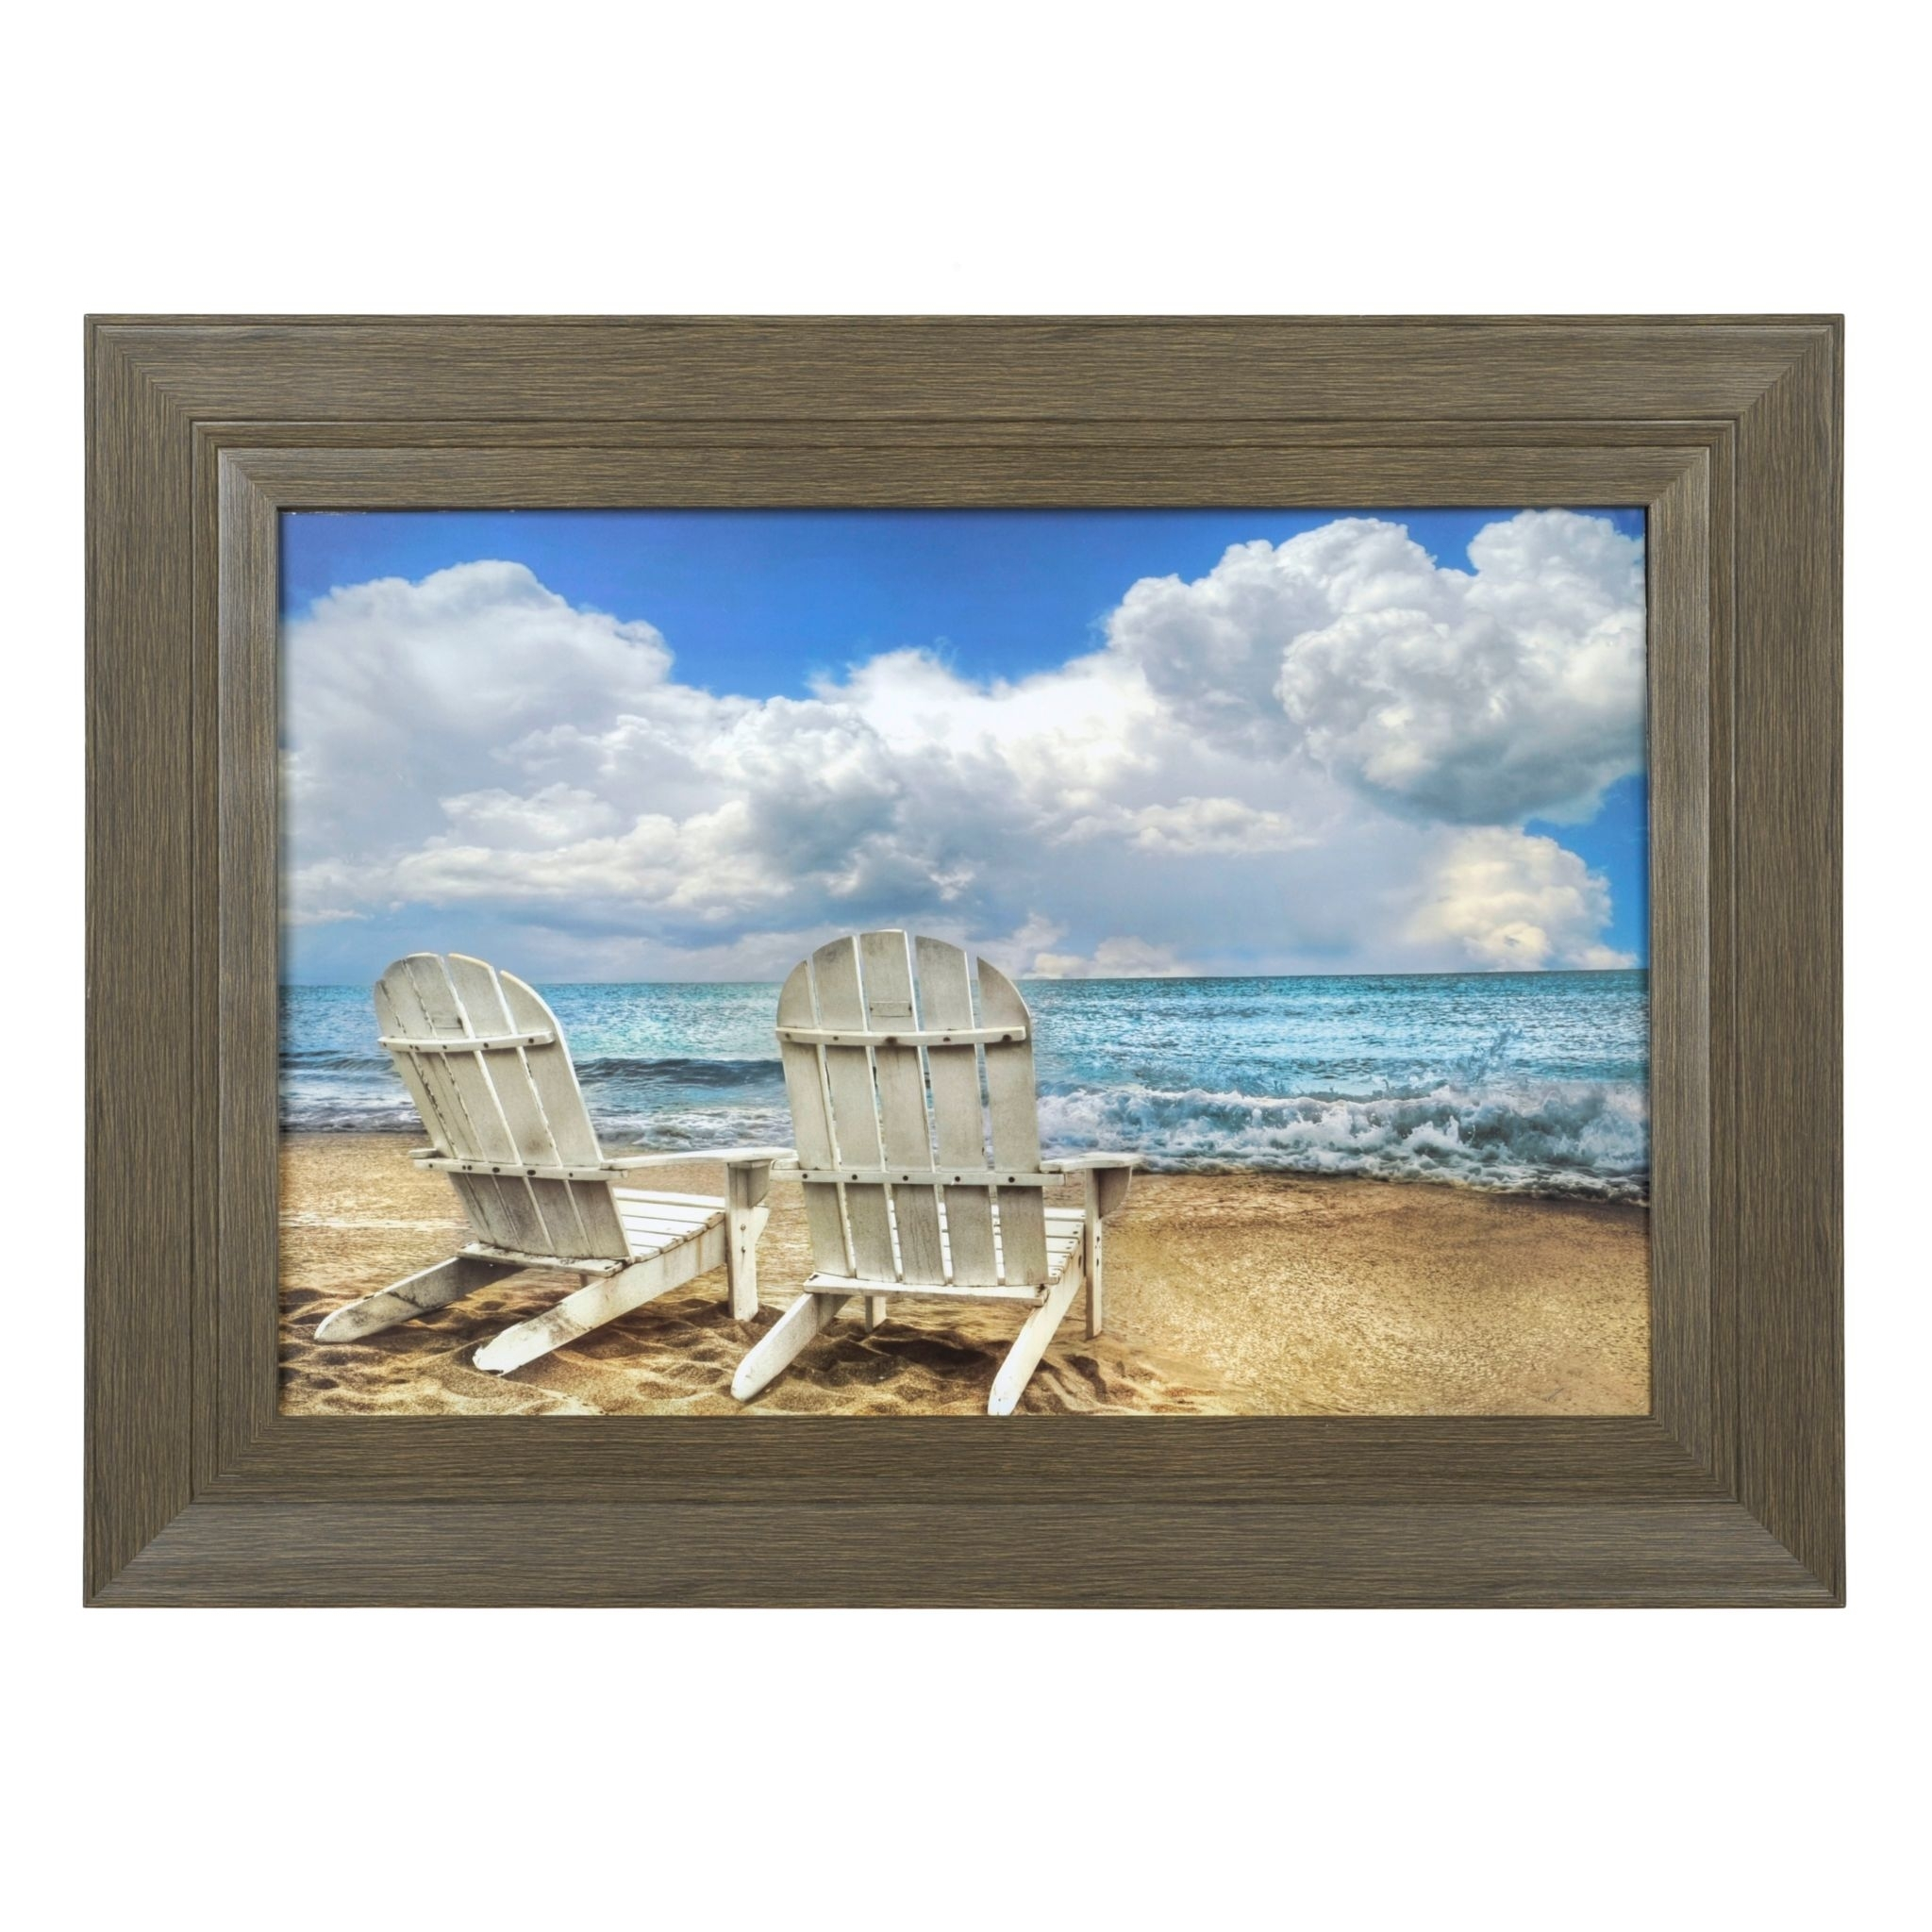 Beach Chairs Framed Art Print | Beach Chairs, Beach And Spaces In Current Framed Beach Art Prints (View 2 of 15)